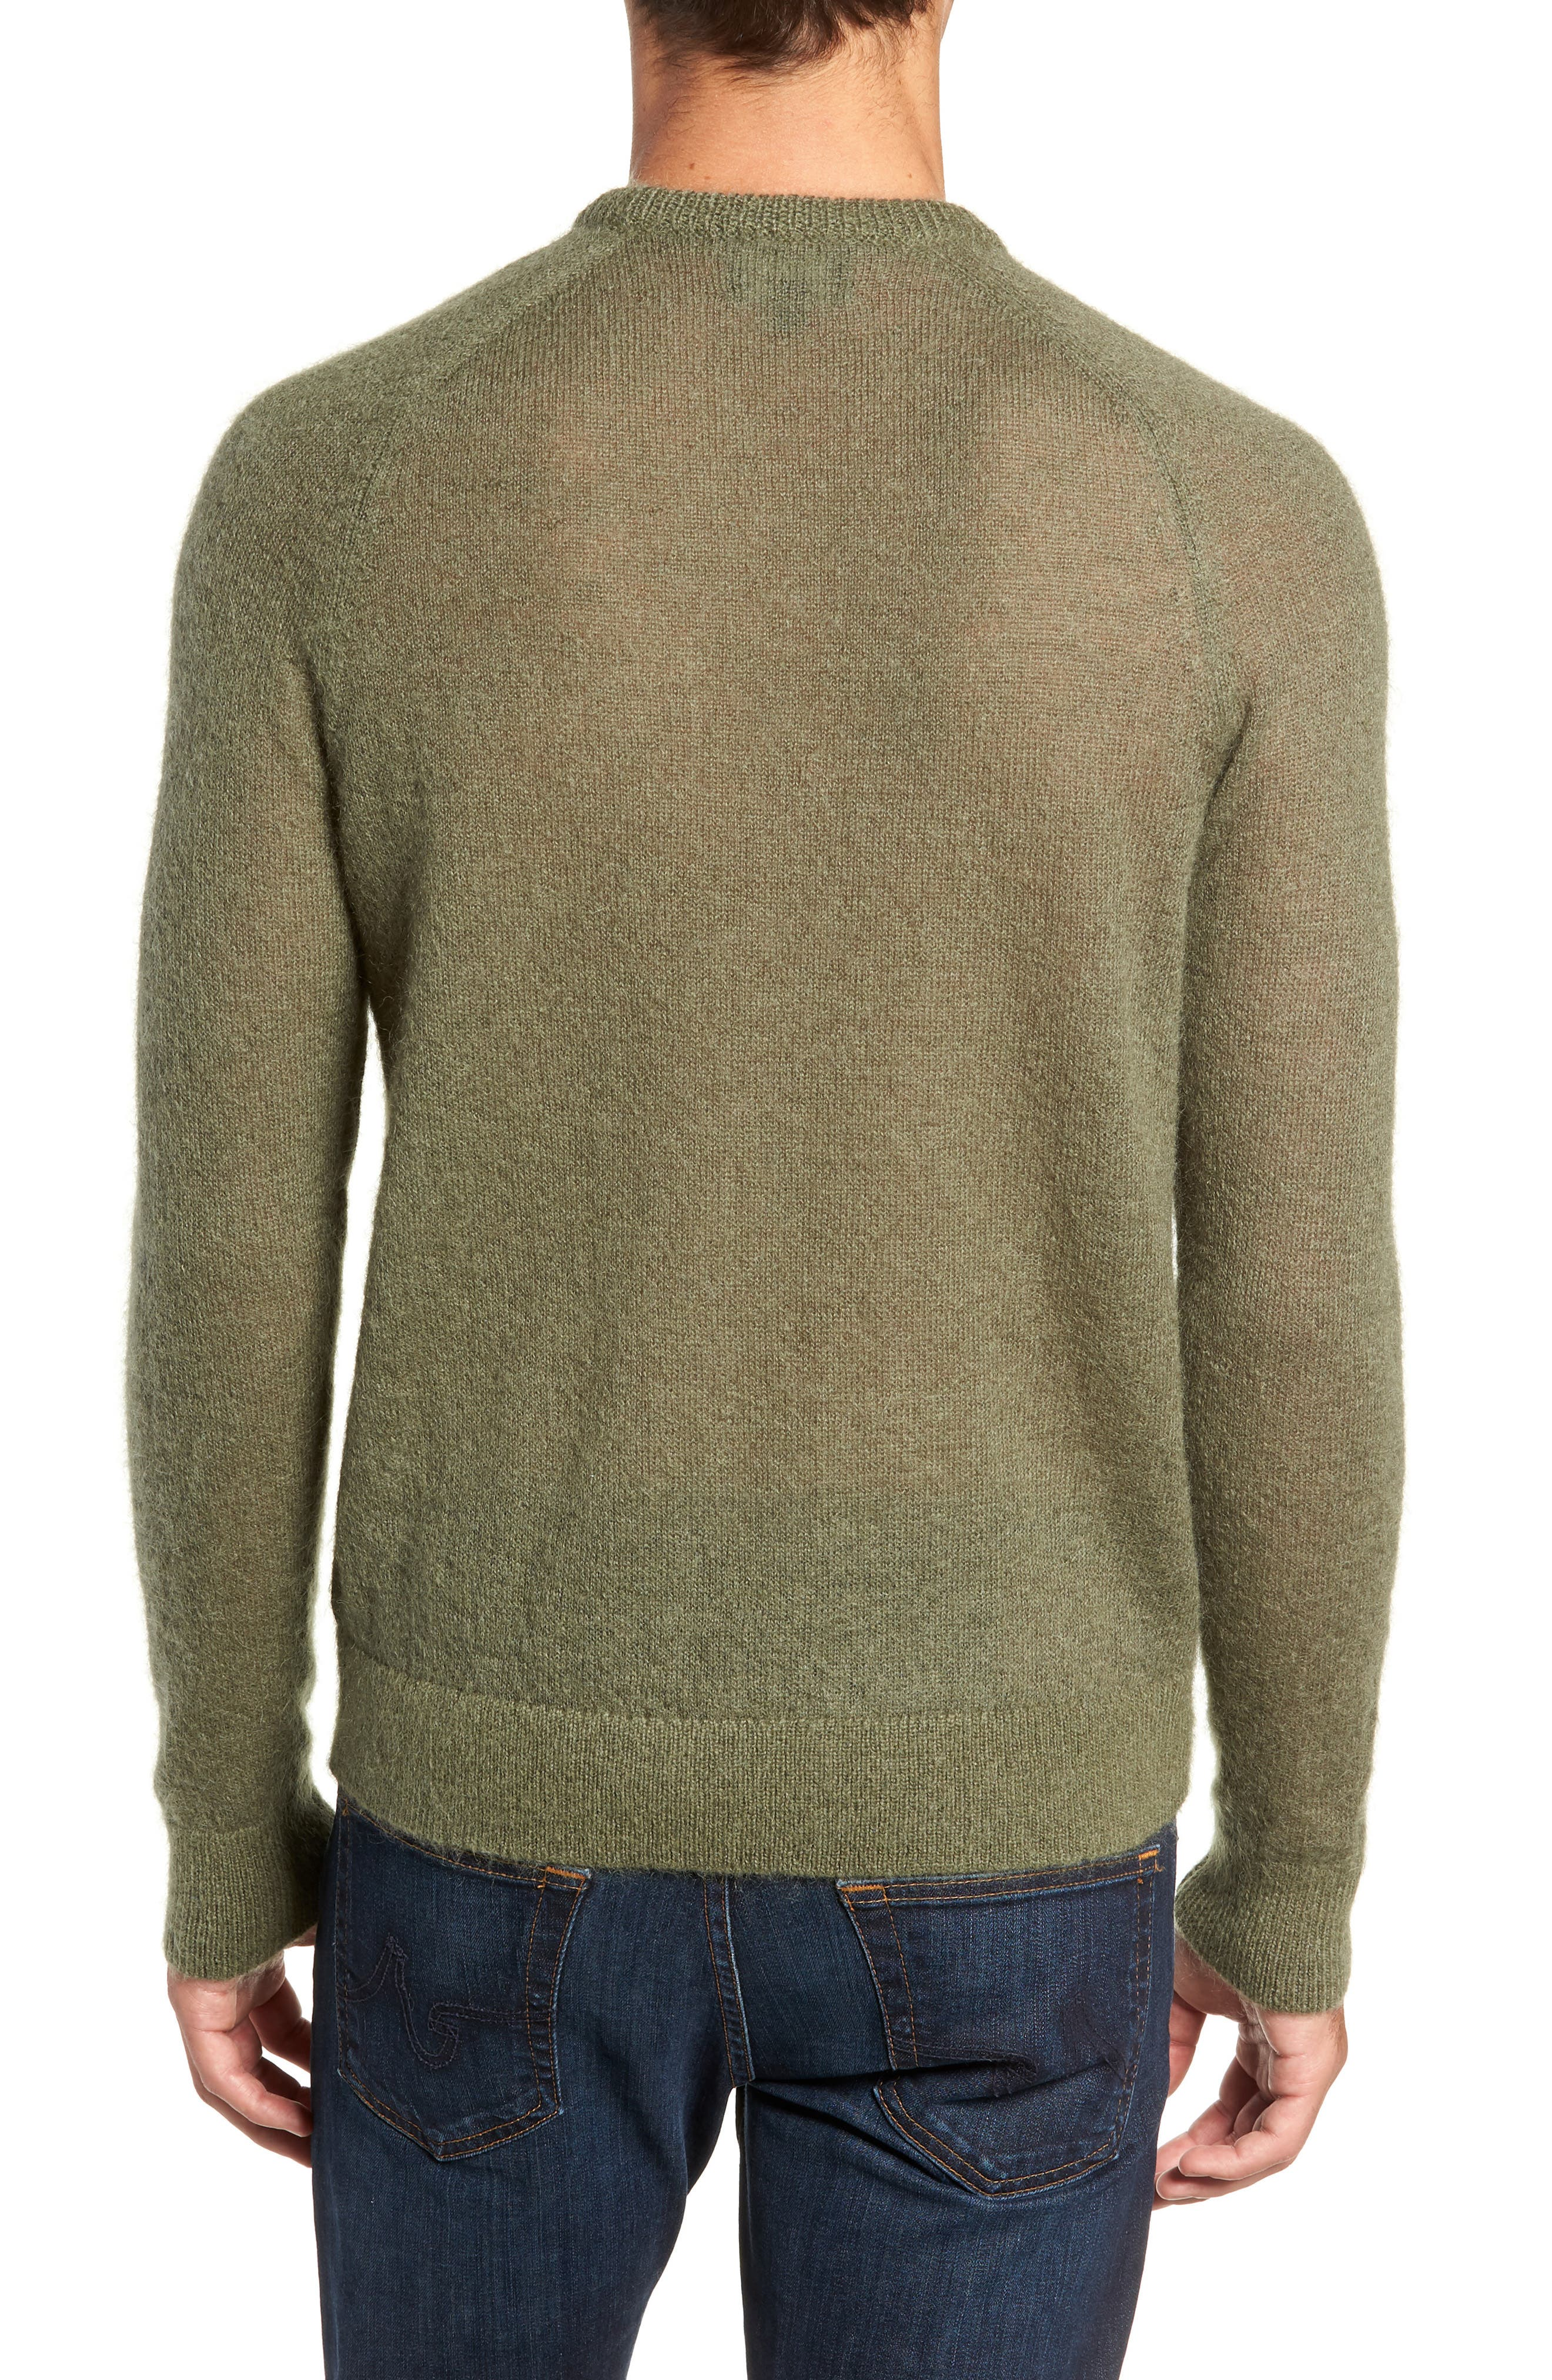 Mohair Blend Crewneck Sweater,                             Alternate thumbnail 2, color,                             DARK OLIVE